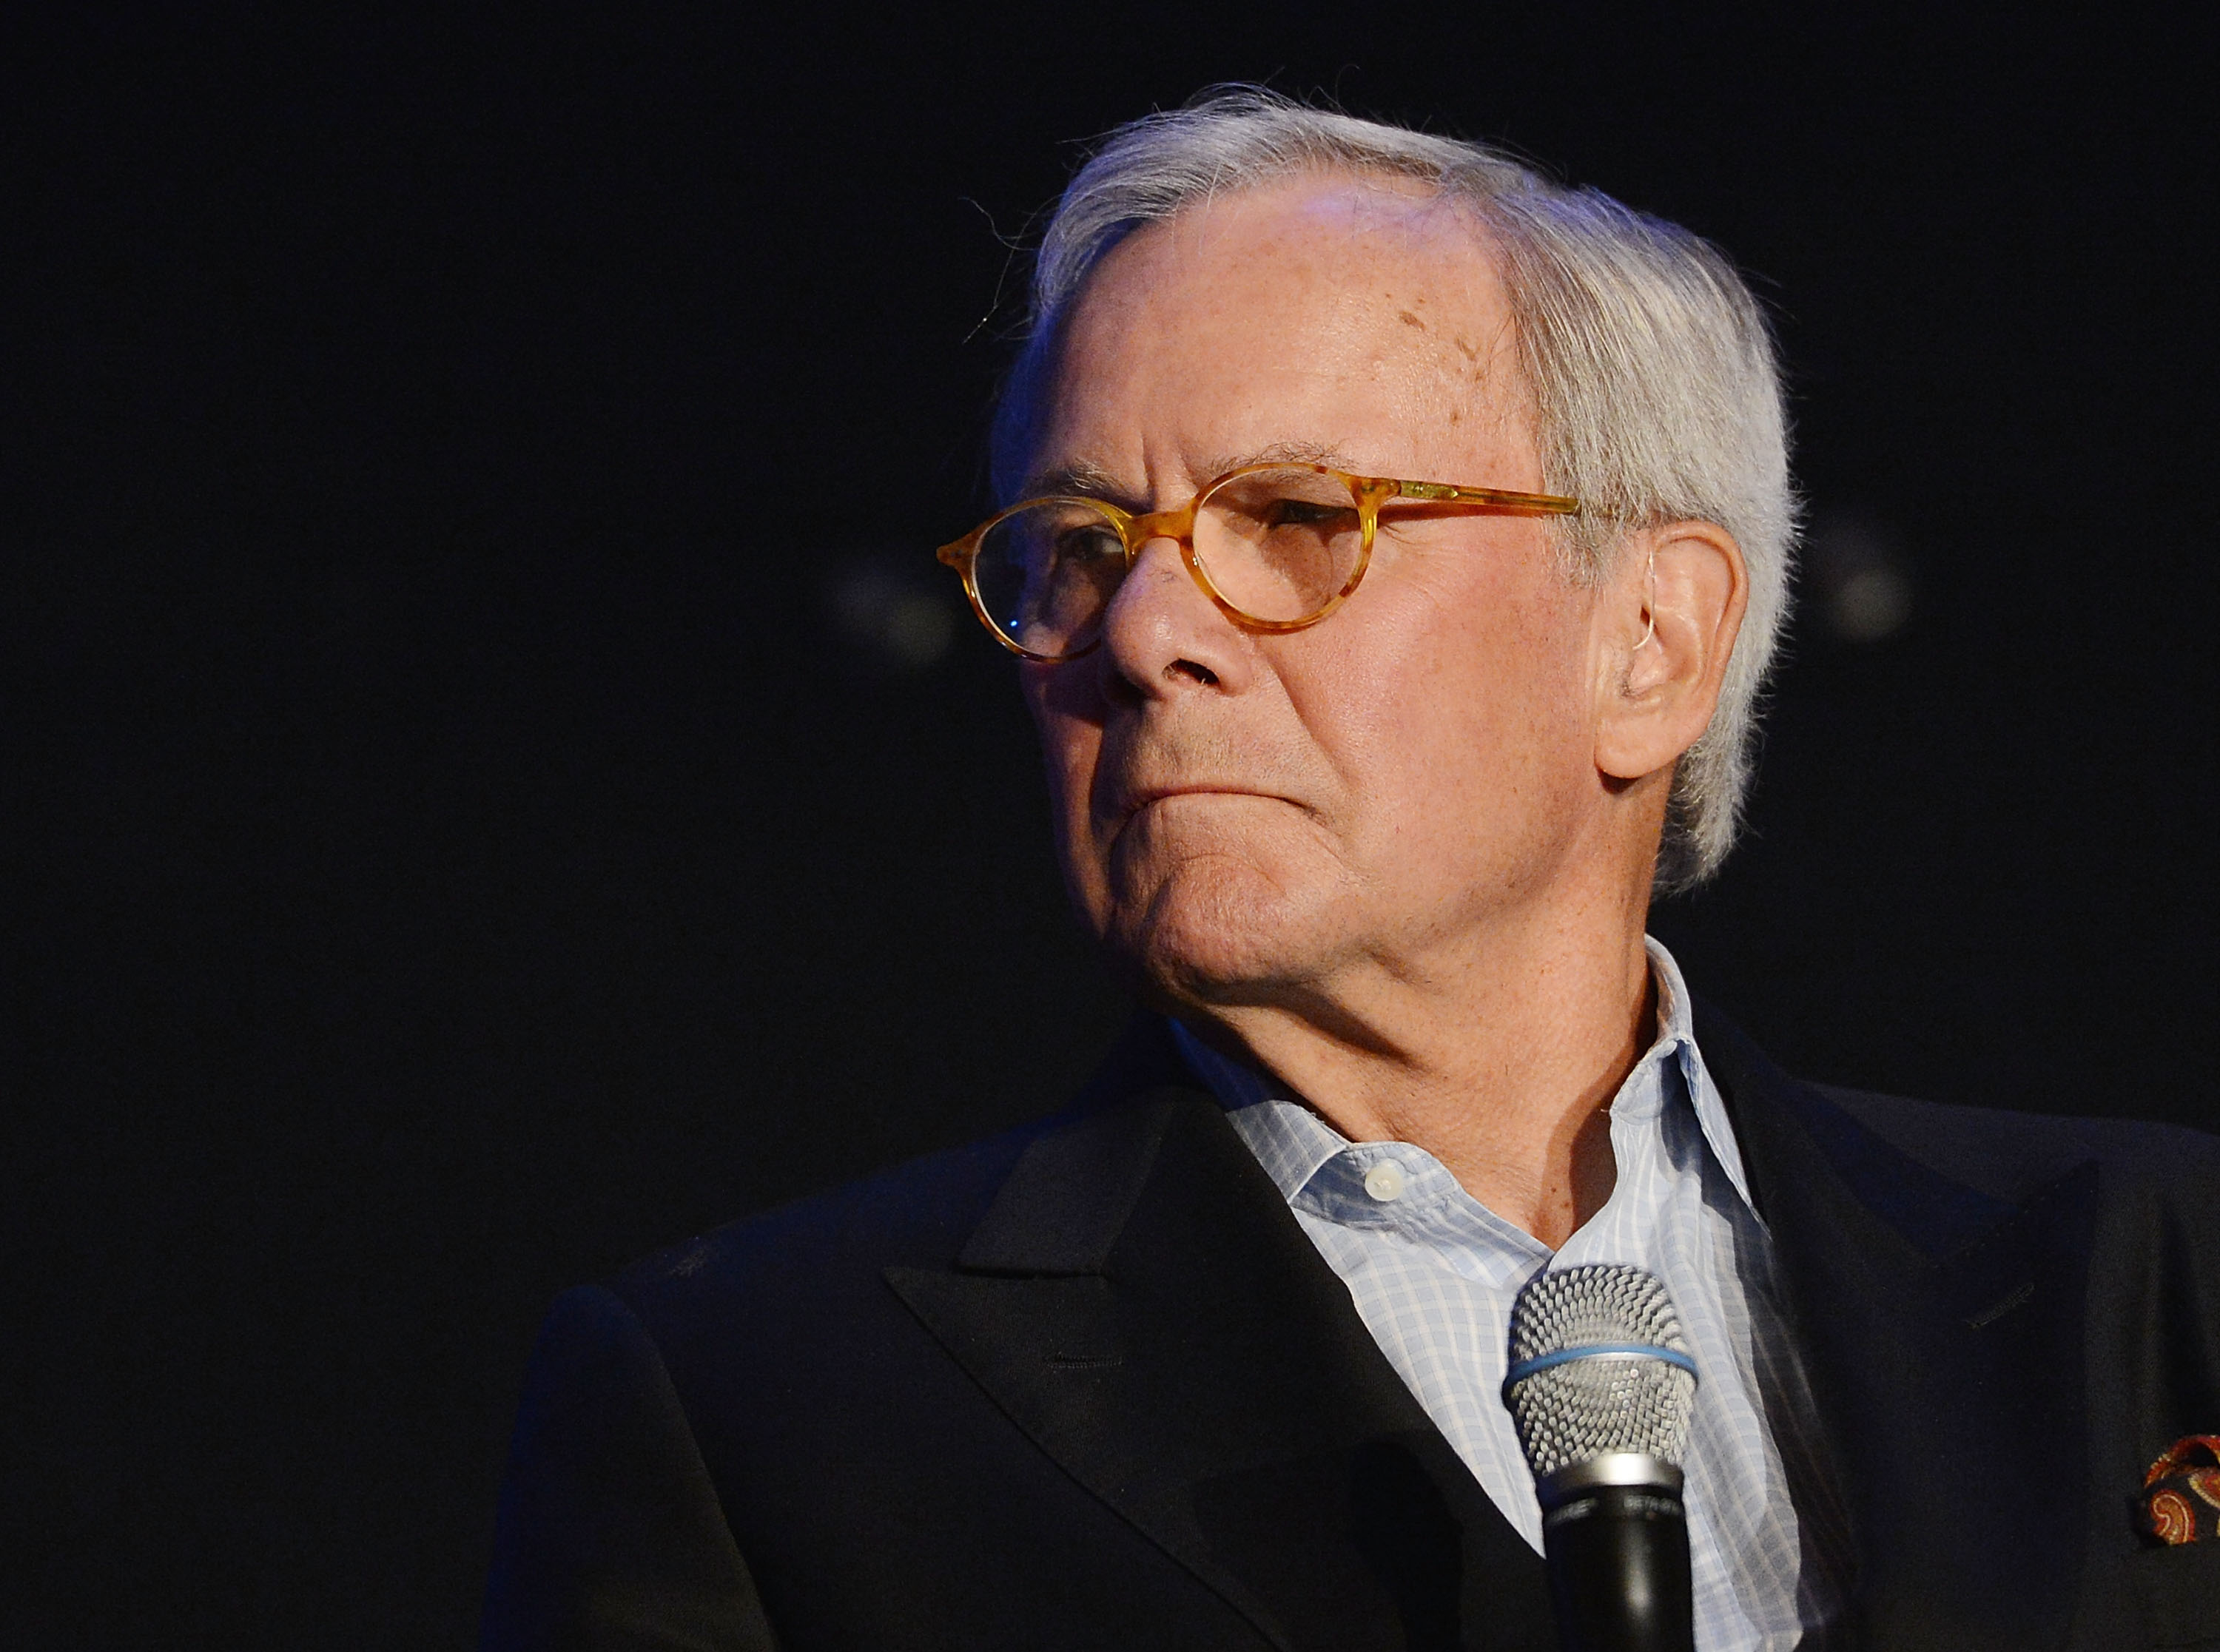 Brokaw on February 8, 2013 in Los Angeles, California.